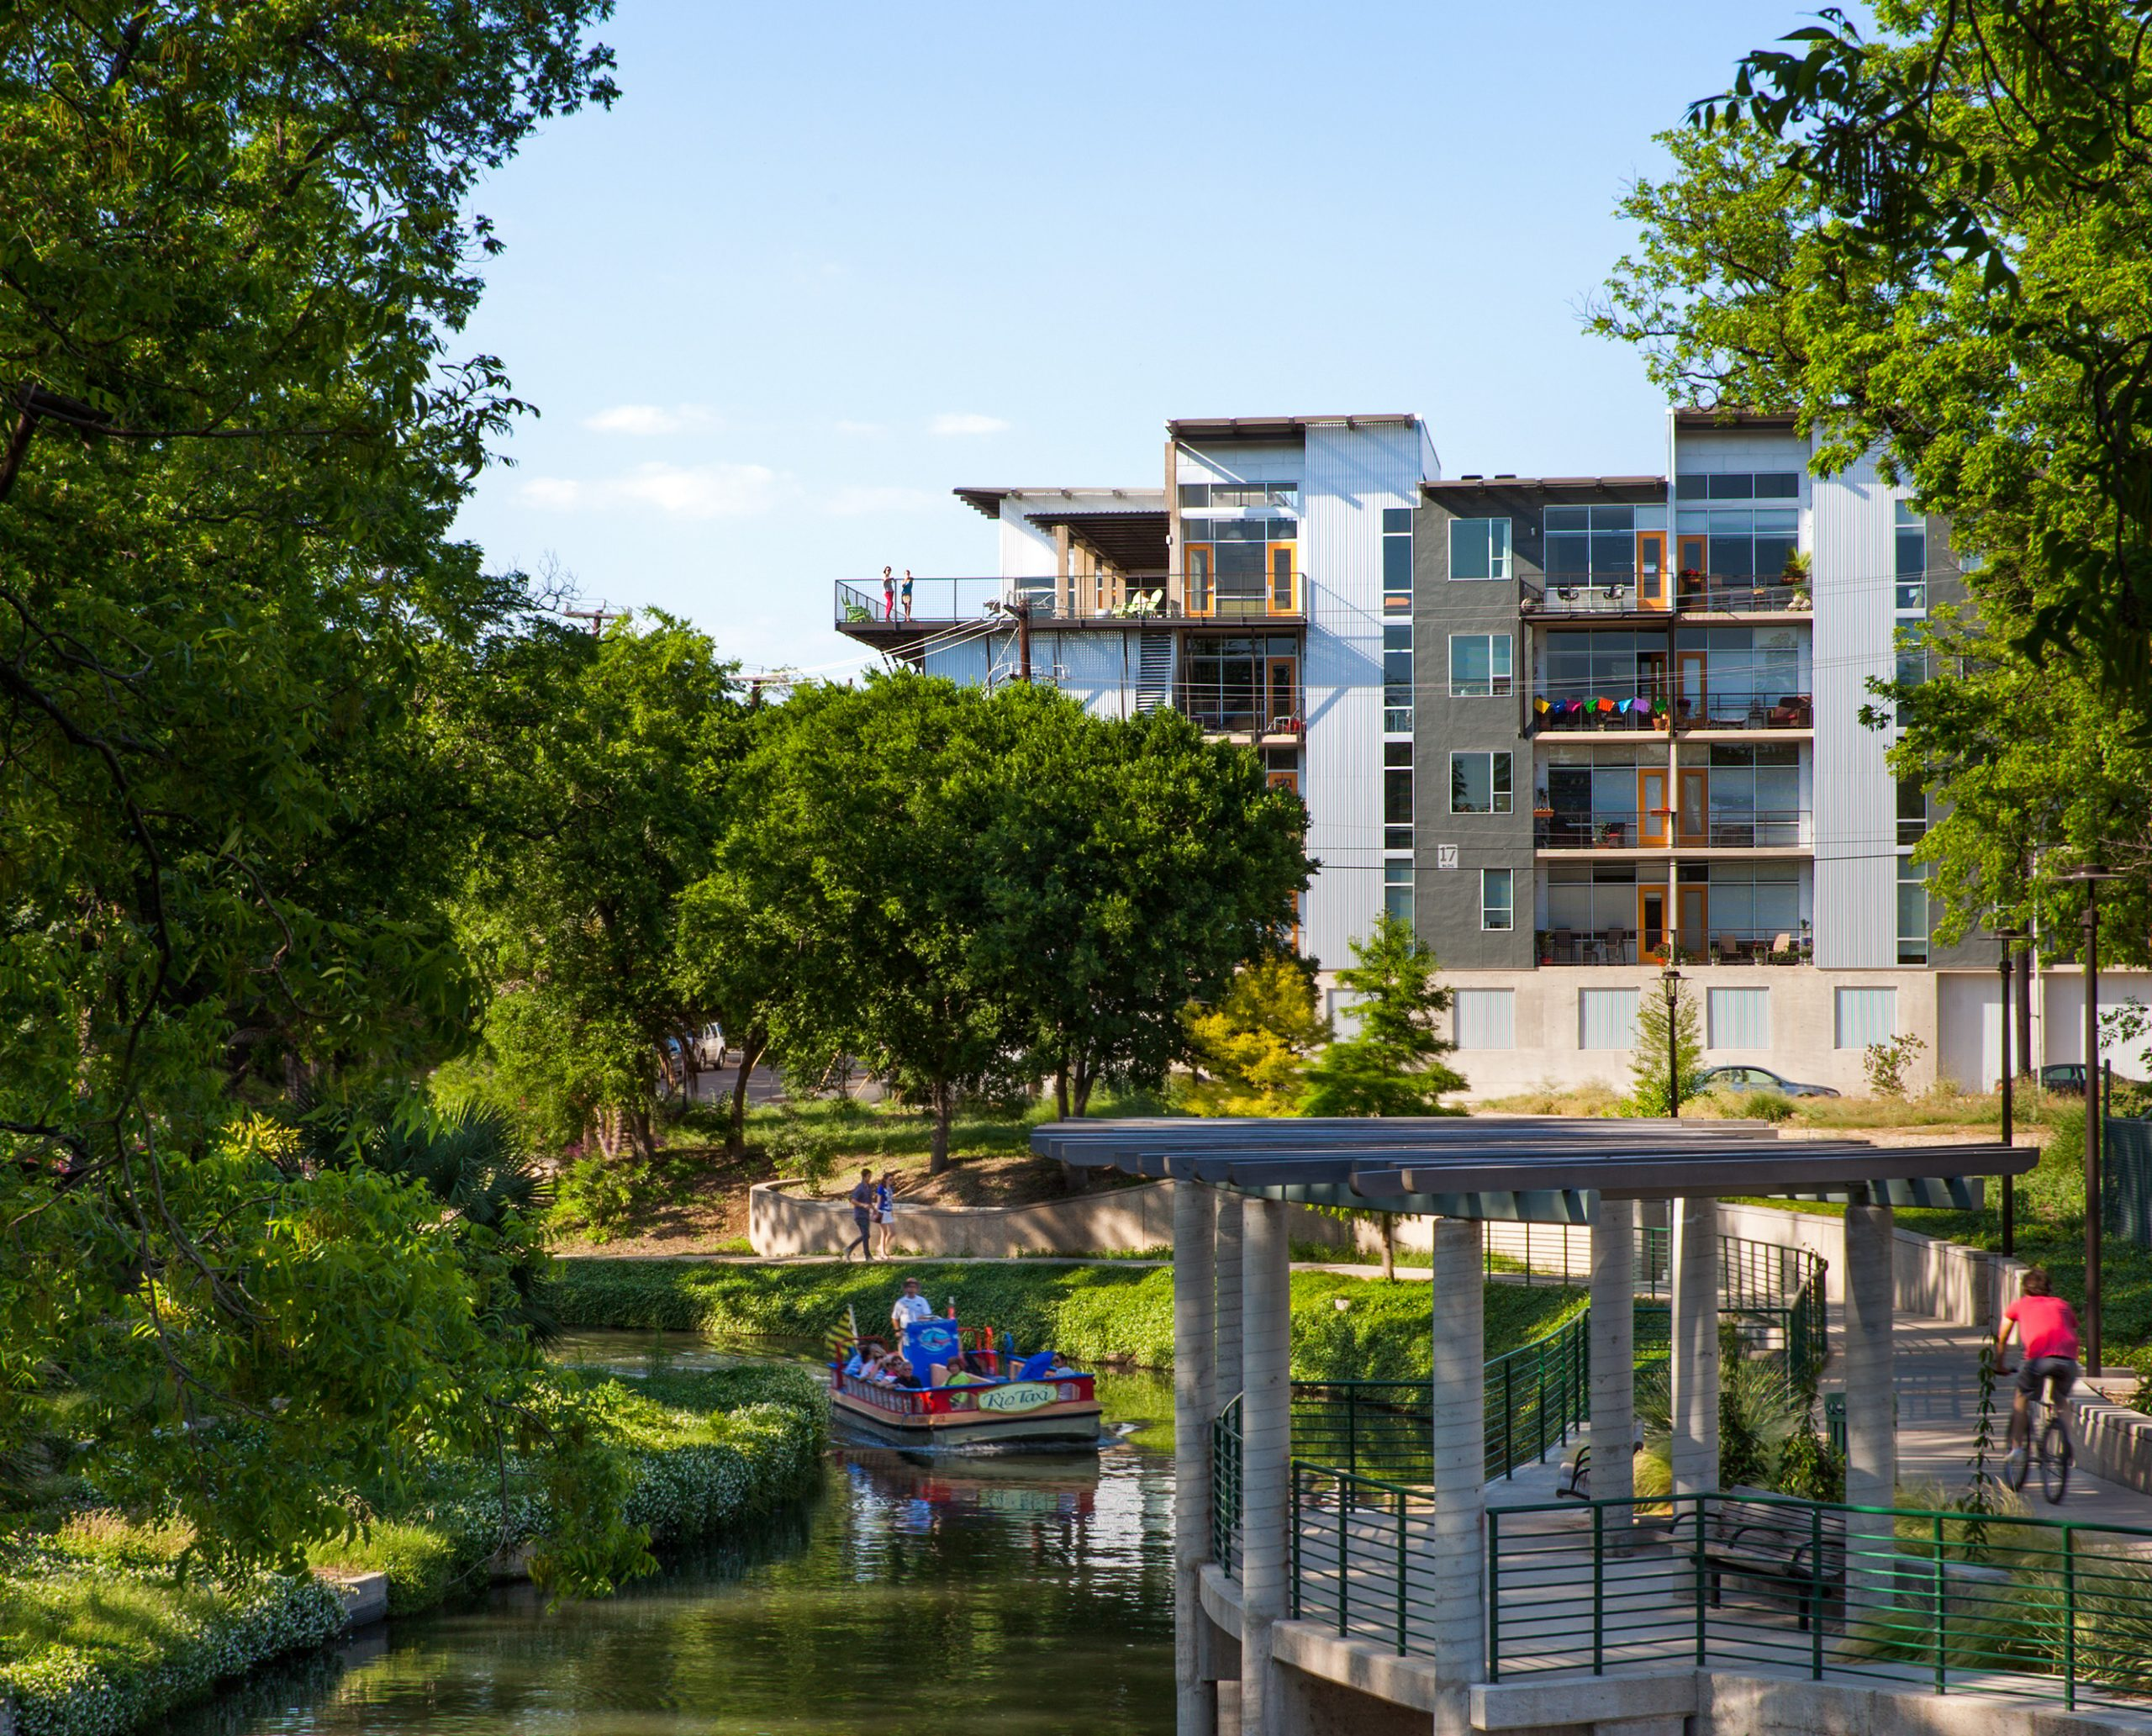 A view of the San Antonio River outside 1221 Broadway.